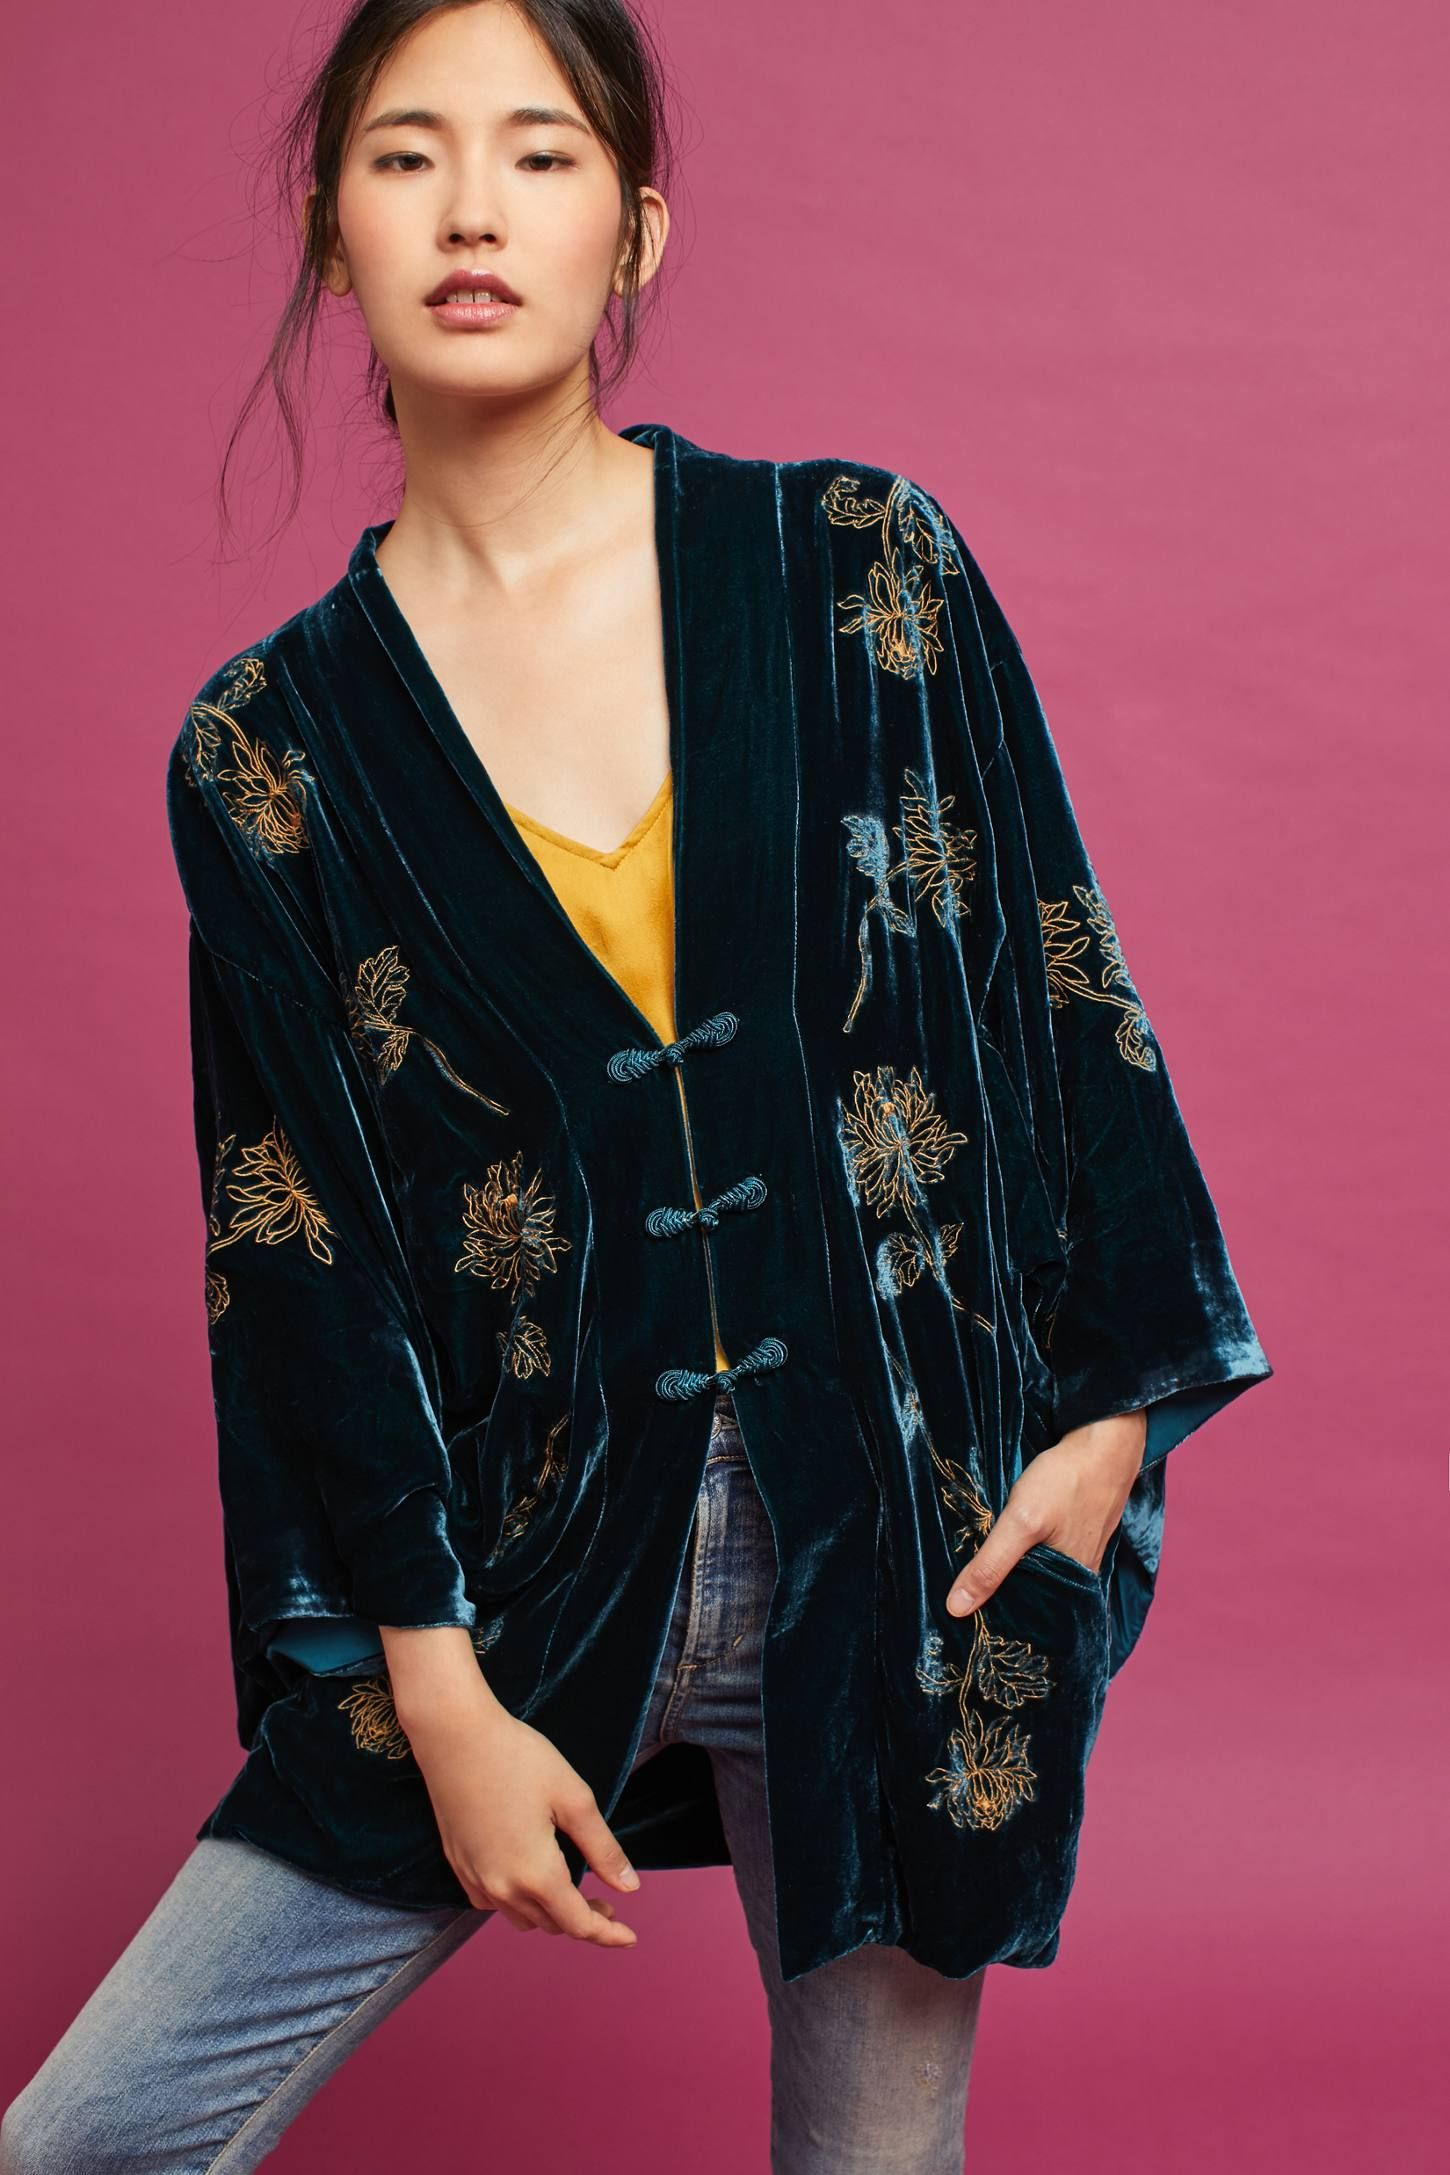 fdbe413b7806 Shop the Velvet Embroidered Kimono and more Anthropologie at Anthropologie  today. Read customer reviews